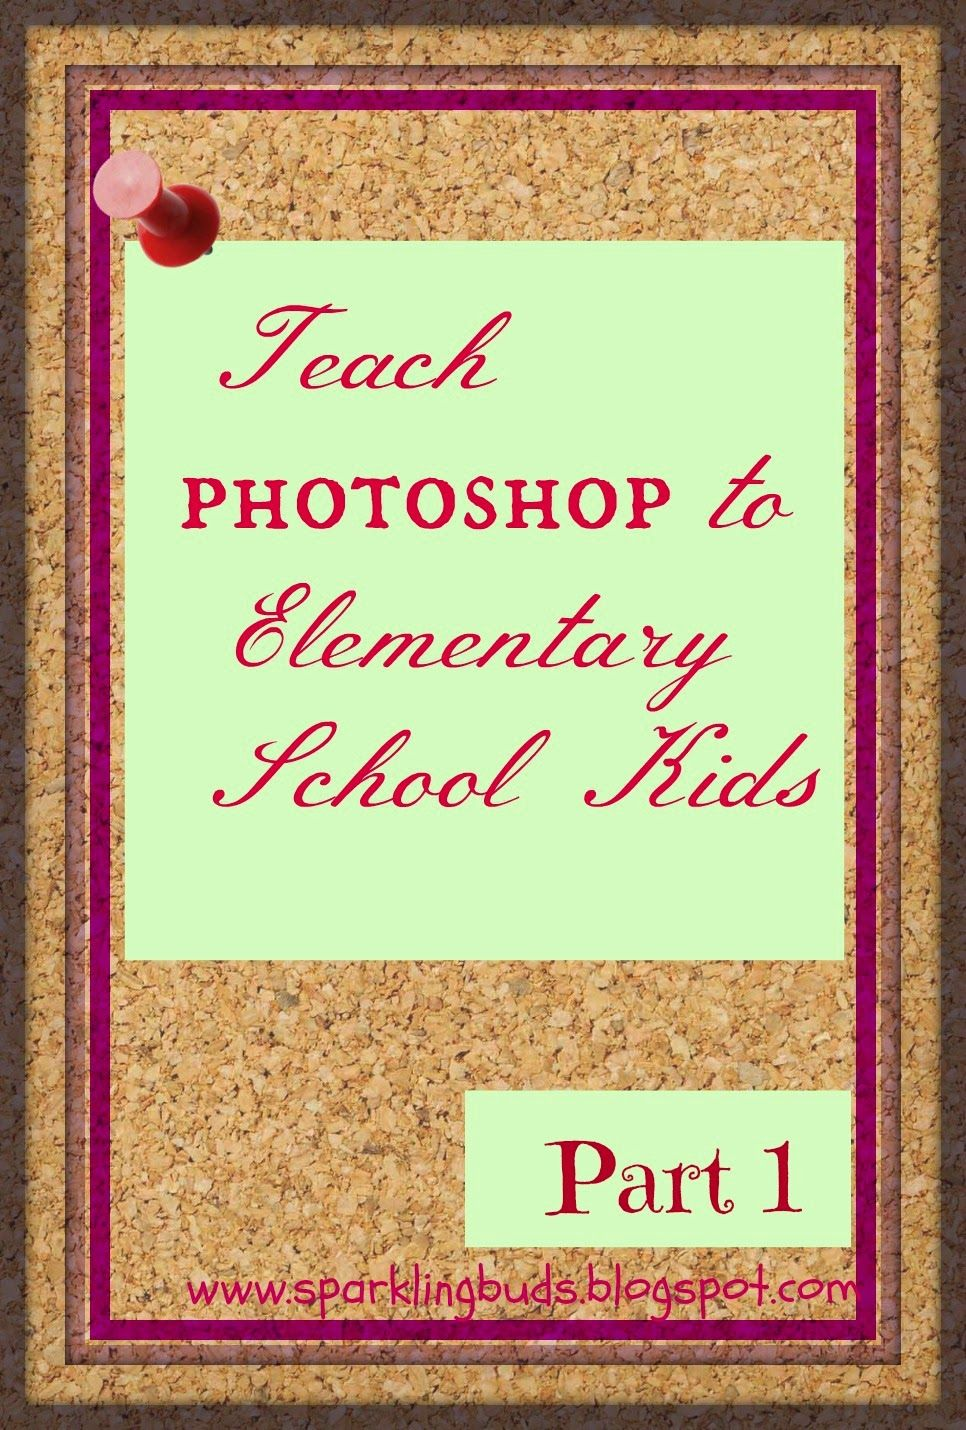 Free Photoshop Tutorial For Elementary School Kids Part 1